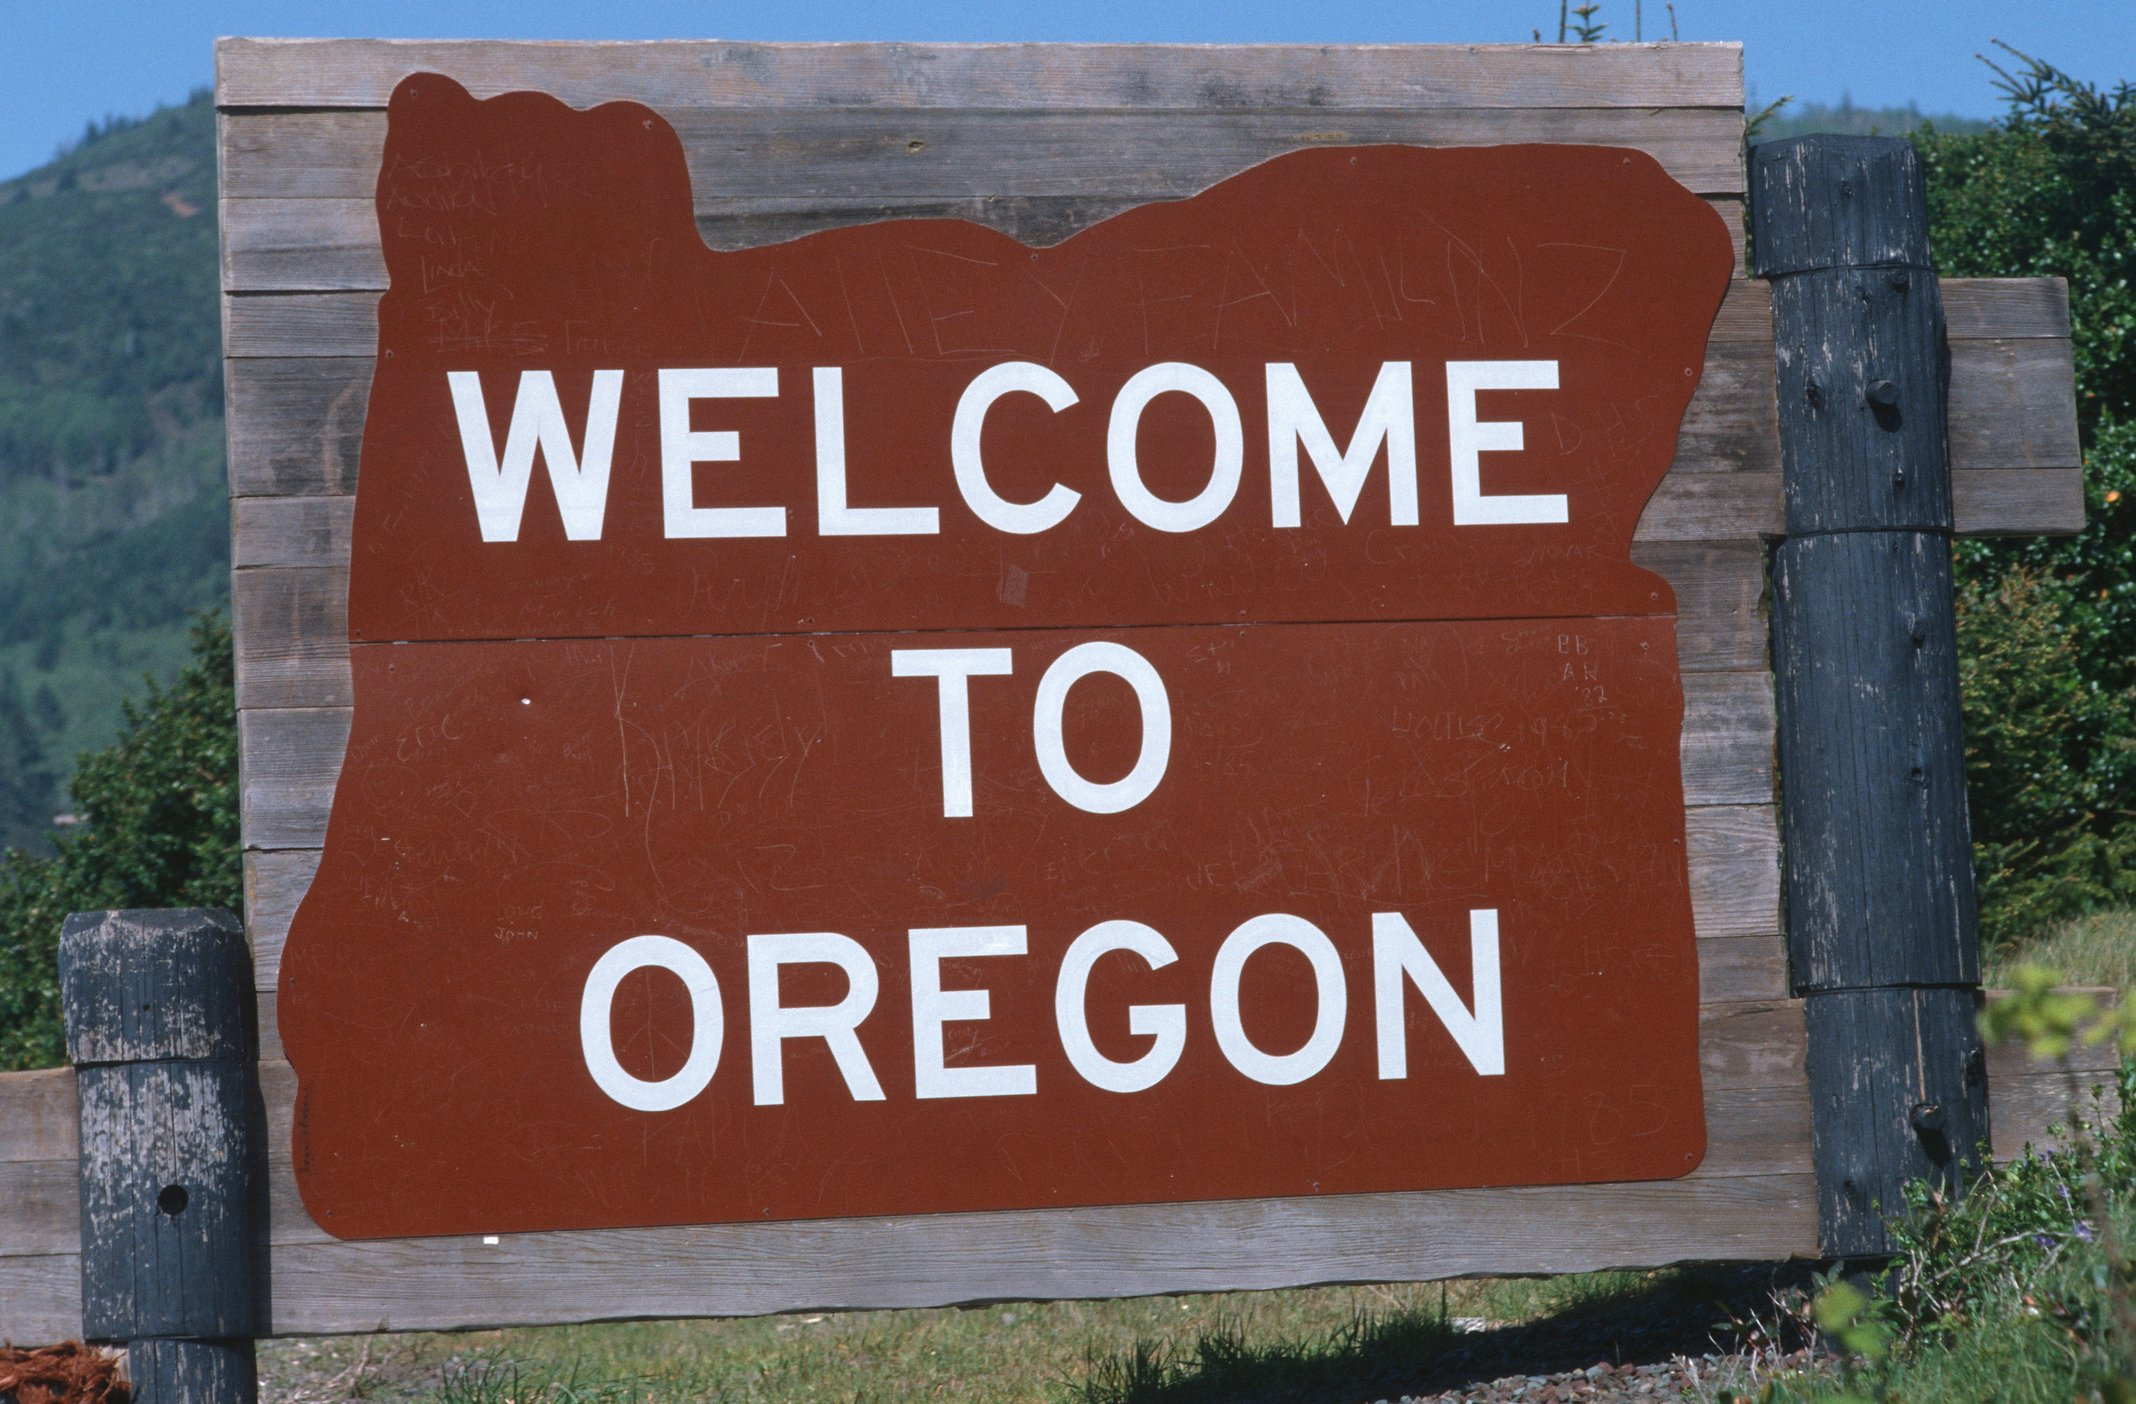 Slide 38 of 51: Oregon has a more rustic design to match the natural beauty of the state.